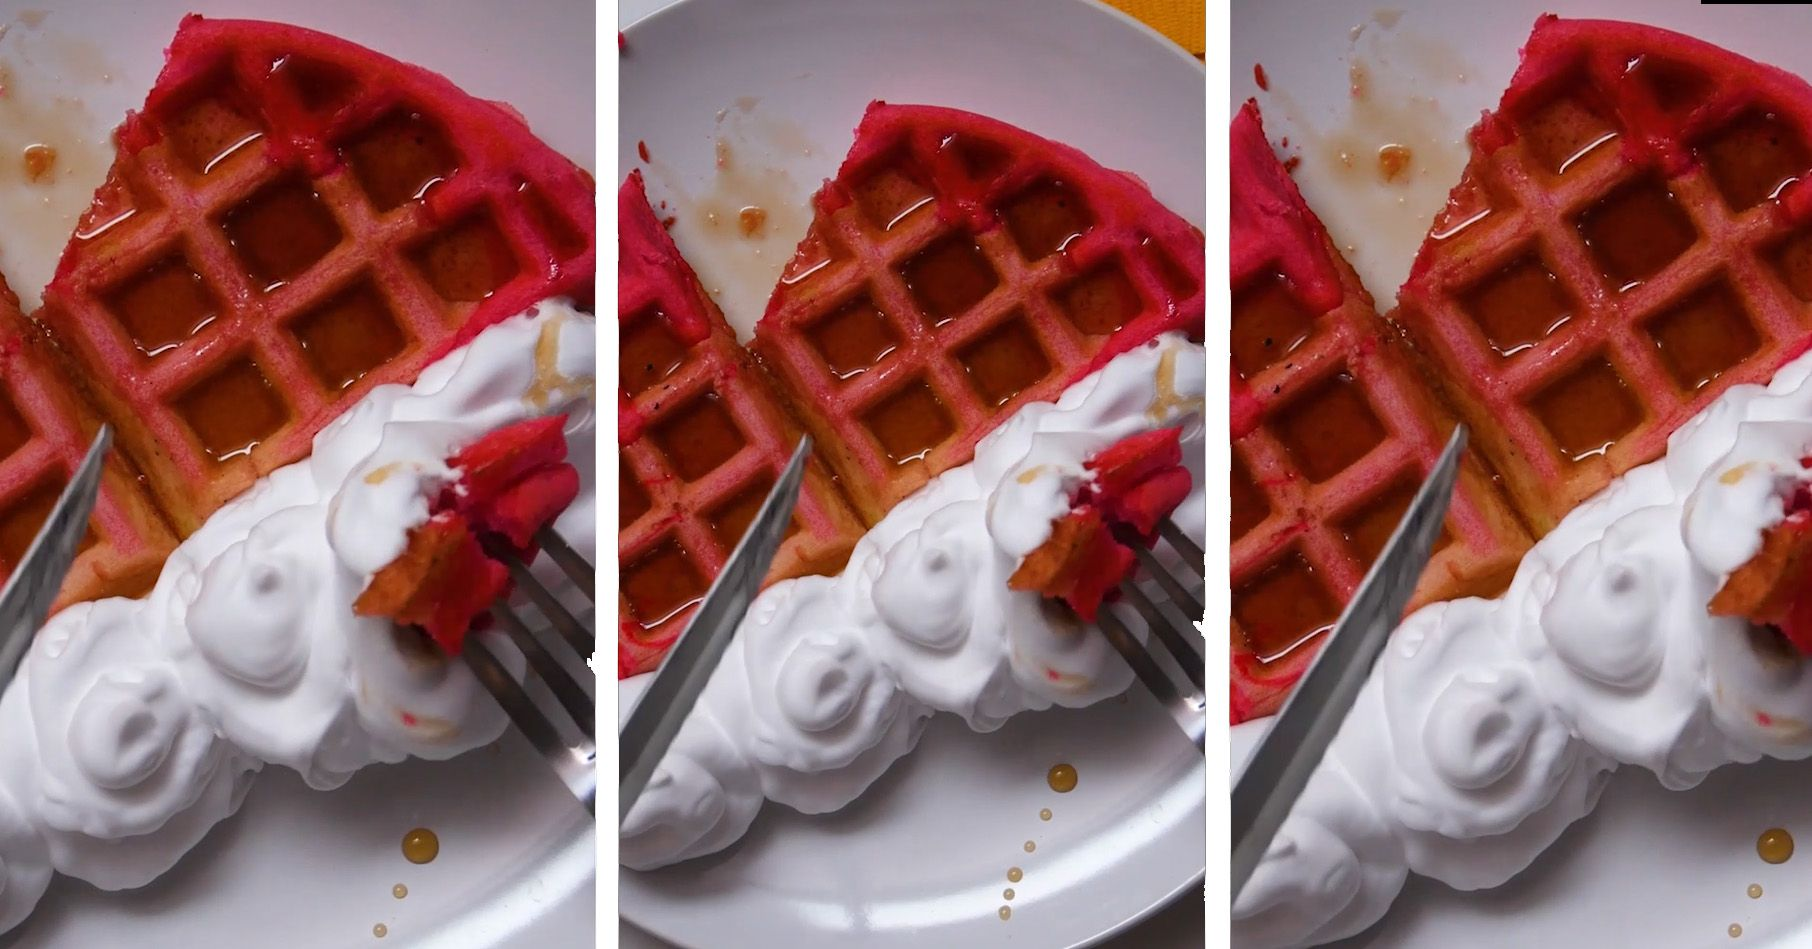 pink ombre waffle with whipped cream being picked up on a silver fork